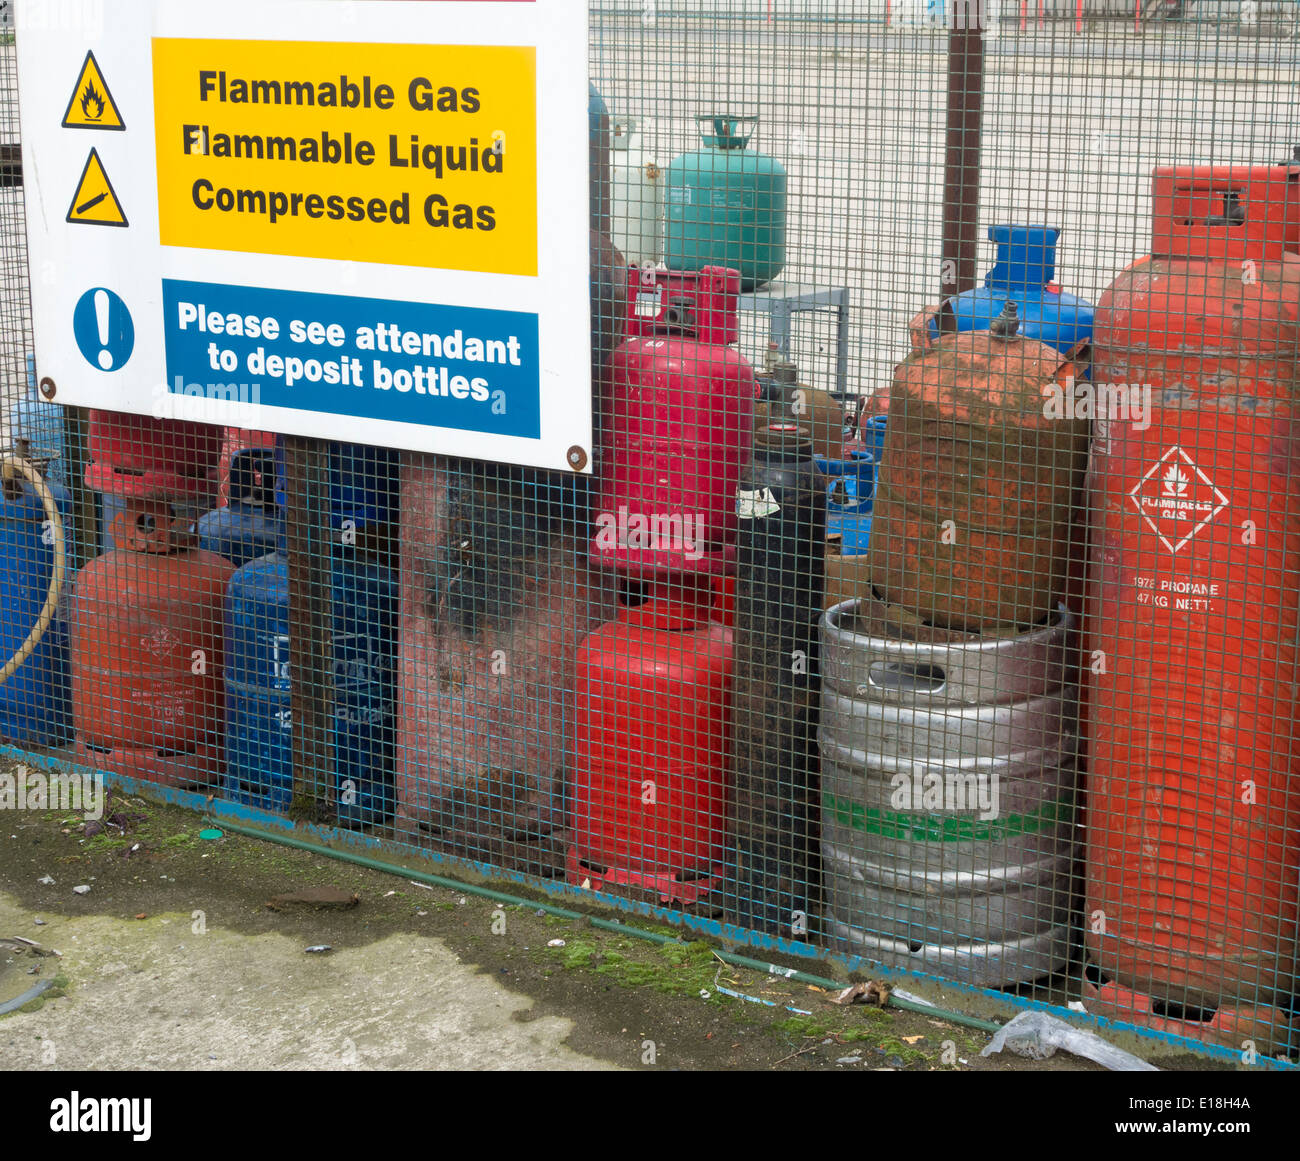 Old gas bottles at Council recycling site for household waste. England. UK - Stock Image